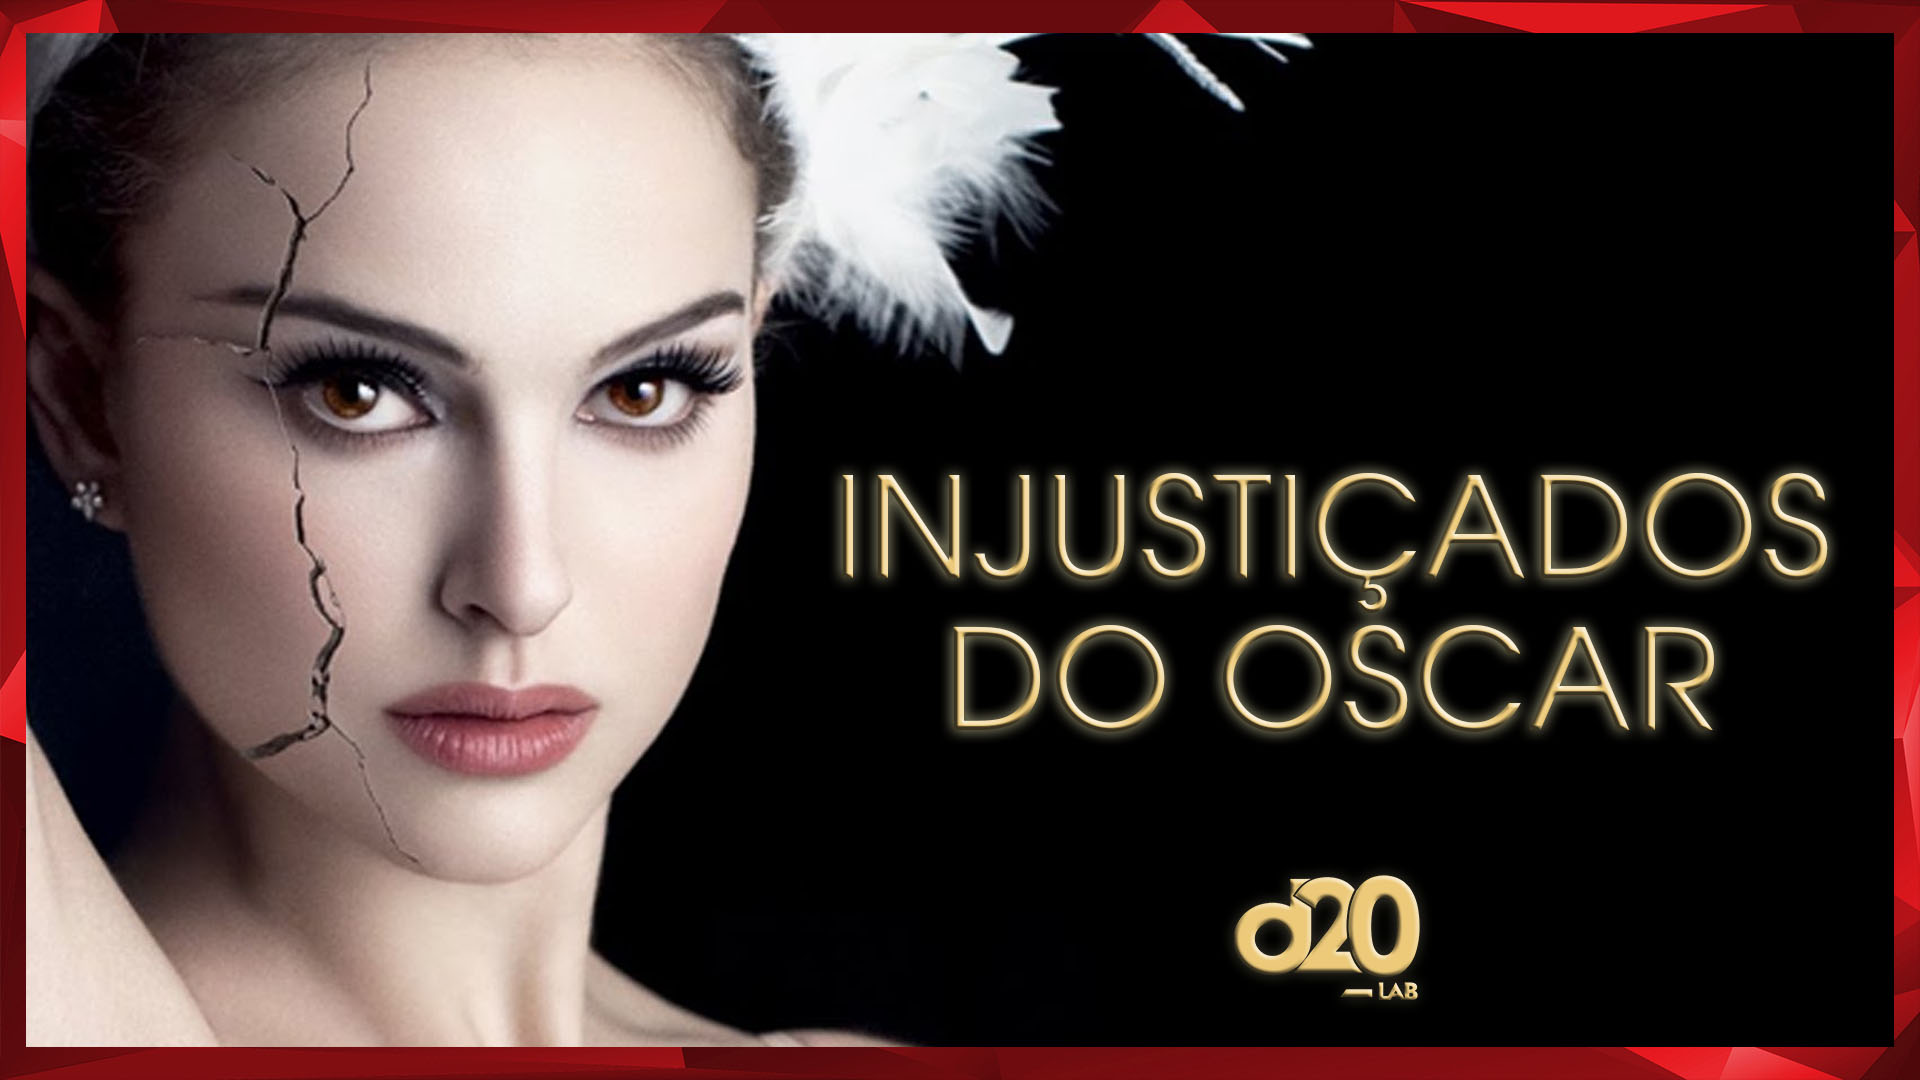 Injustiçados do Oscar | D20 Lab 41